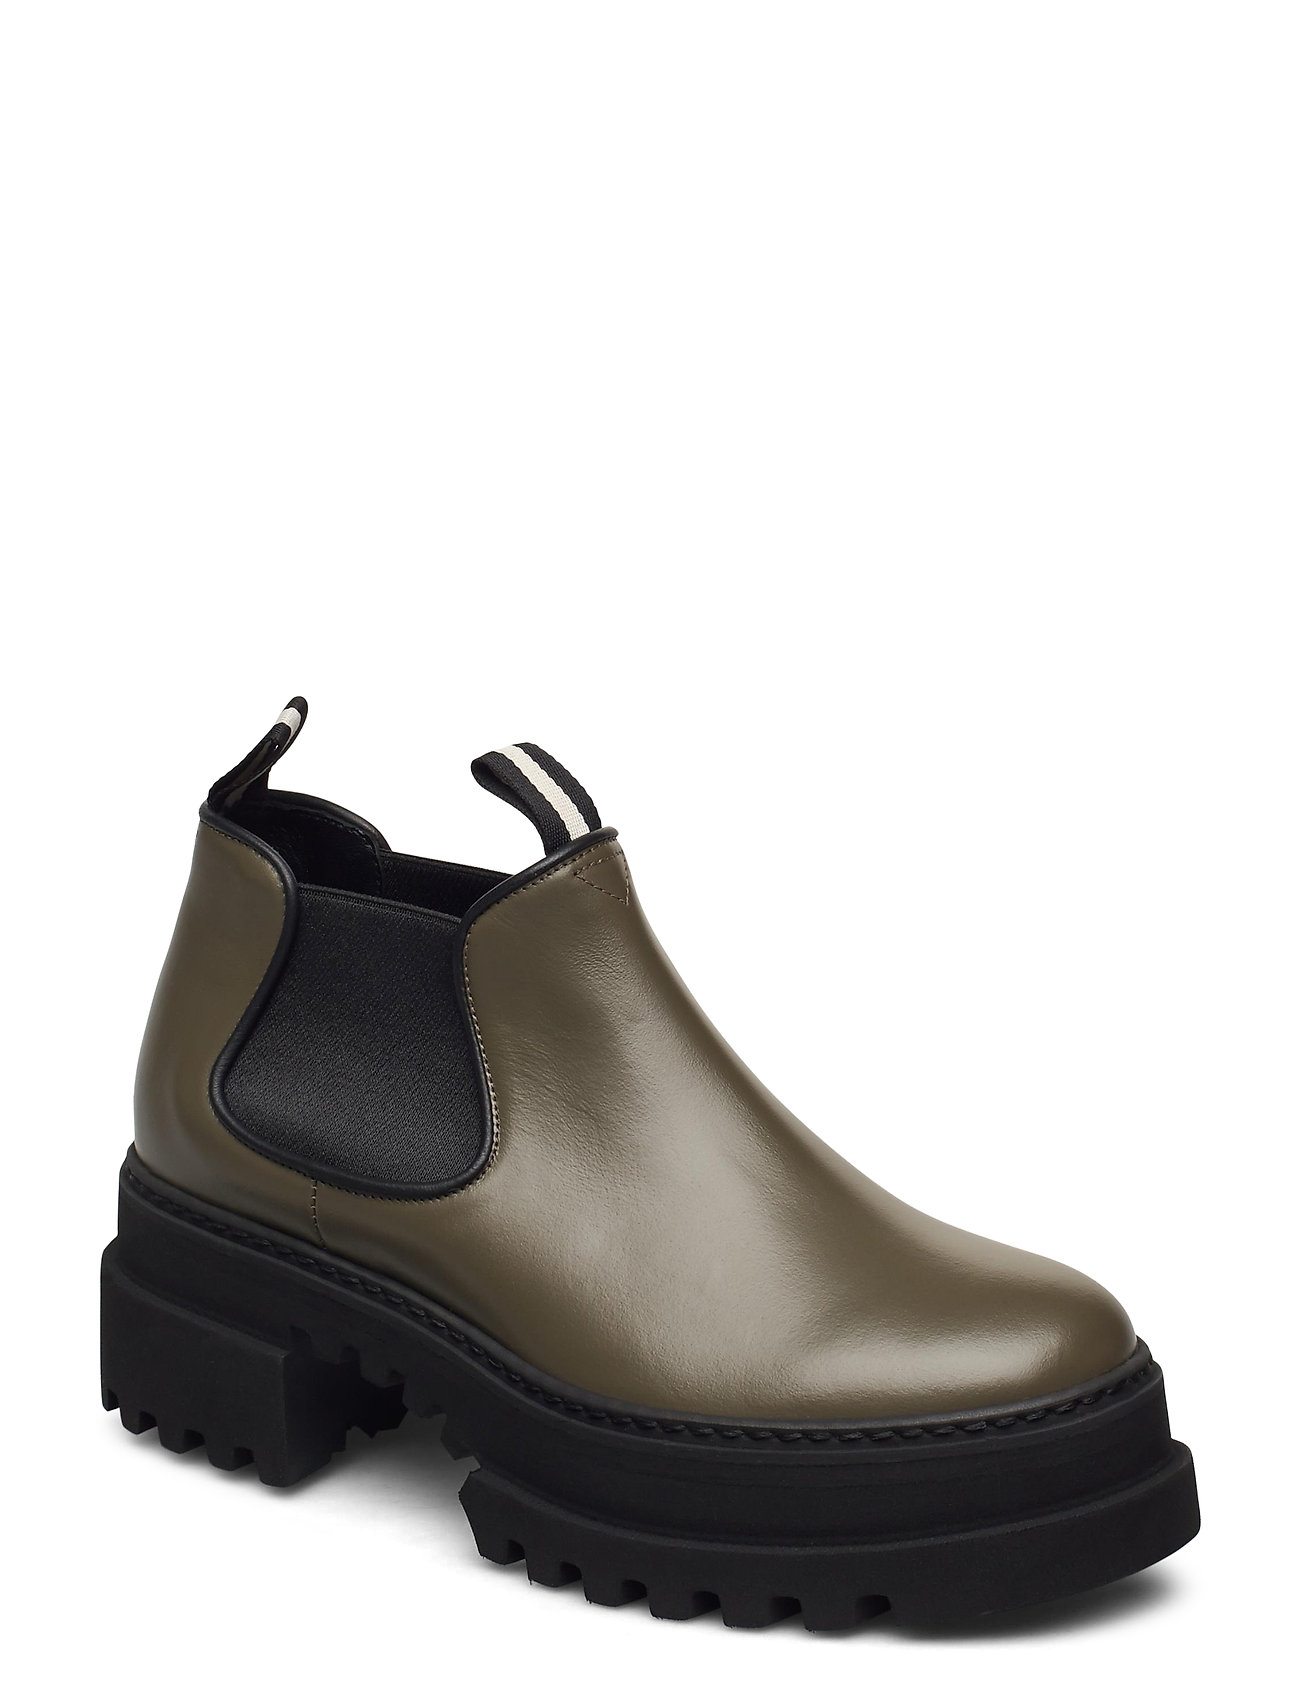 Image of Giordy/21 Shoes Boots Ankle Boots Ankle Boot - Flat Sort Bally (3464914099)